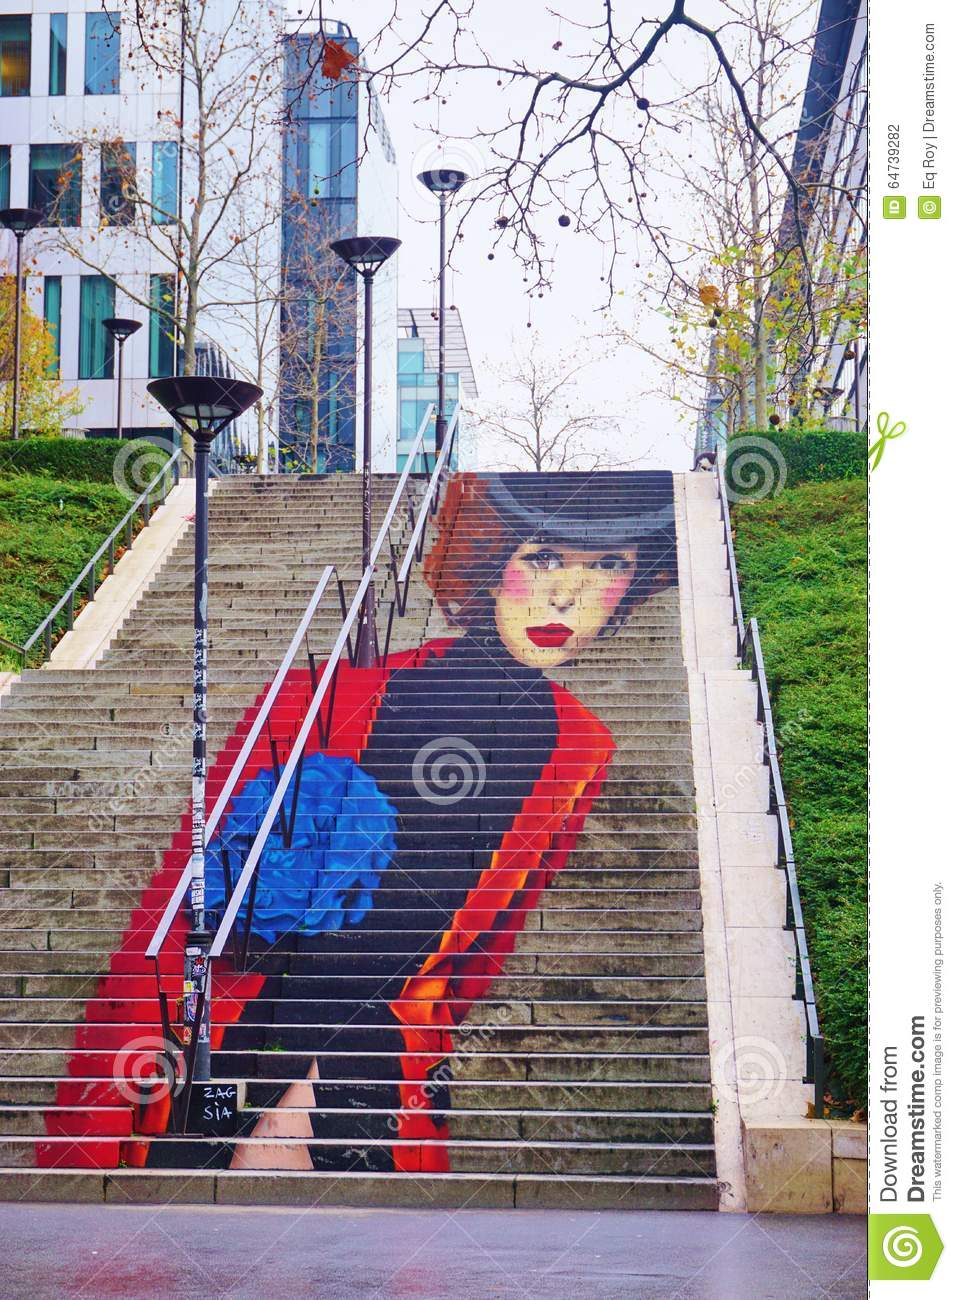 La Parisienne Street Art Wall Painting Of A Staircase On Rue Du